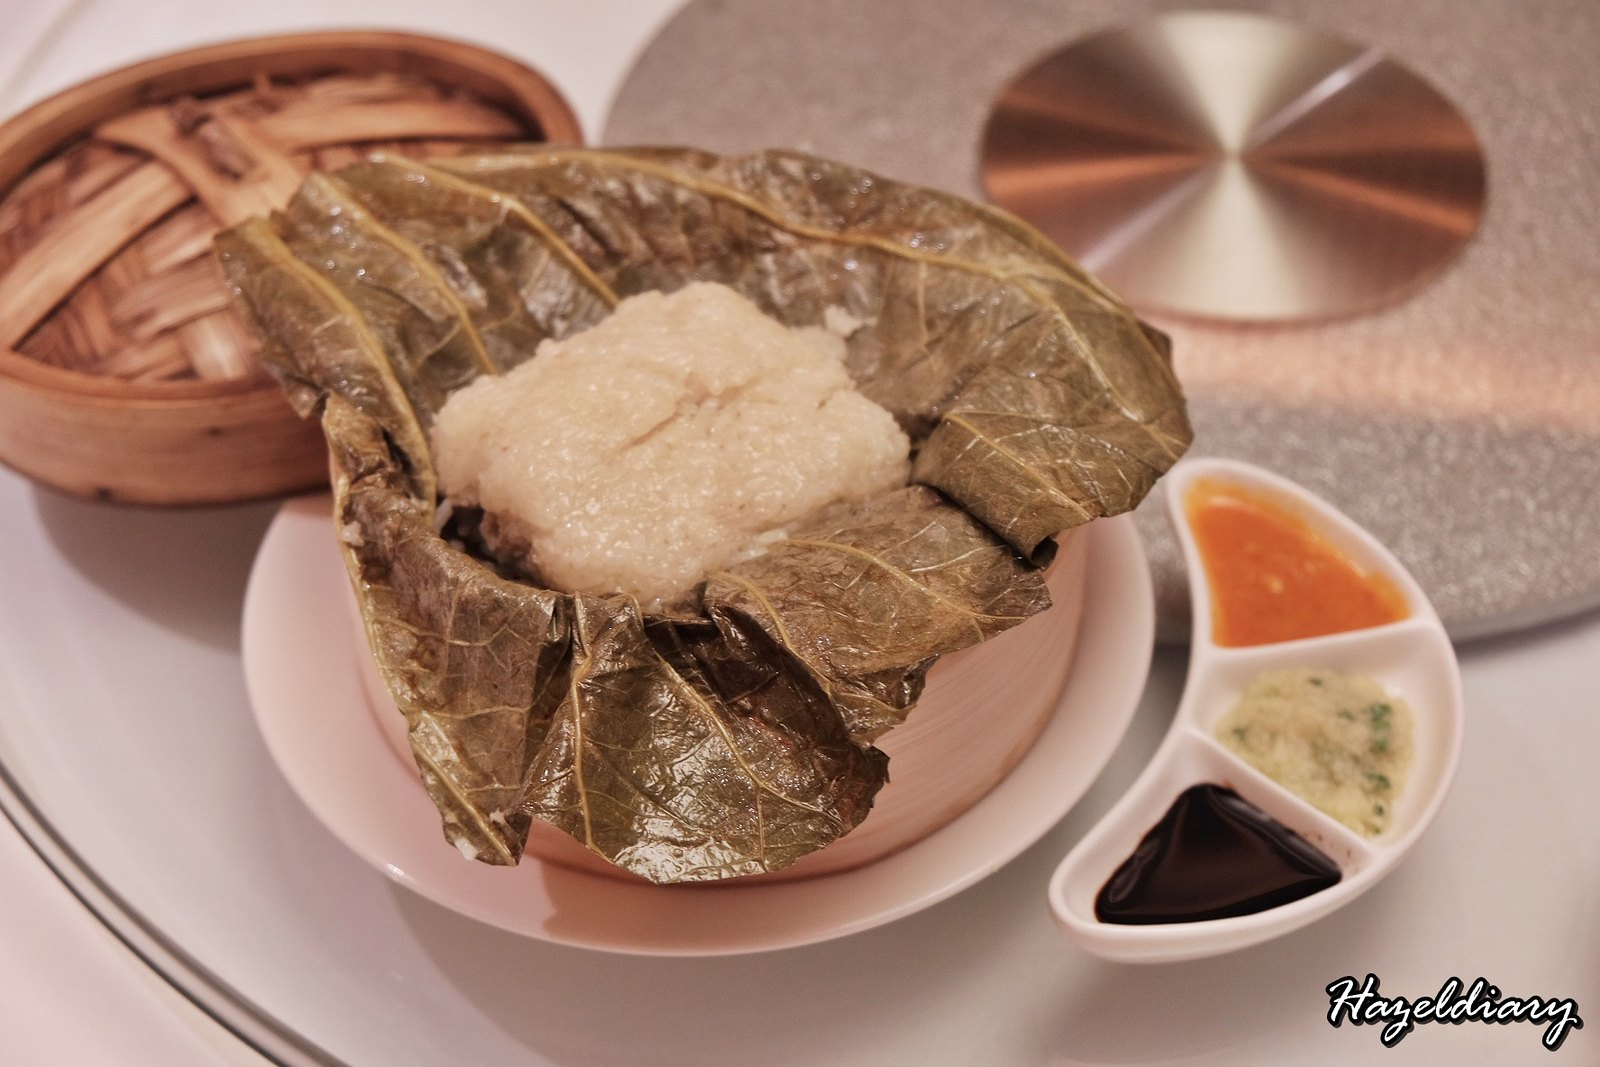 Yan Cantonese Cuisine-Steamed Hainanese Chicken with Sticky Rice wrapped in Lotus Leaf